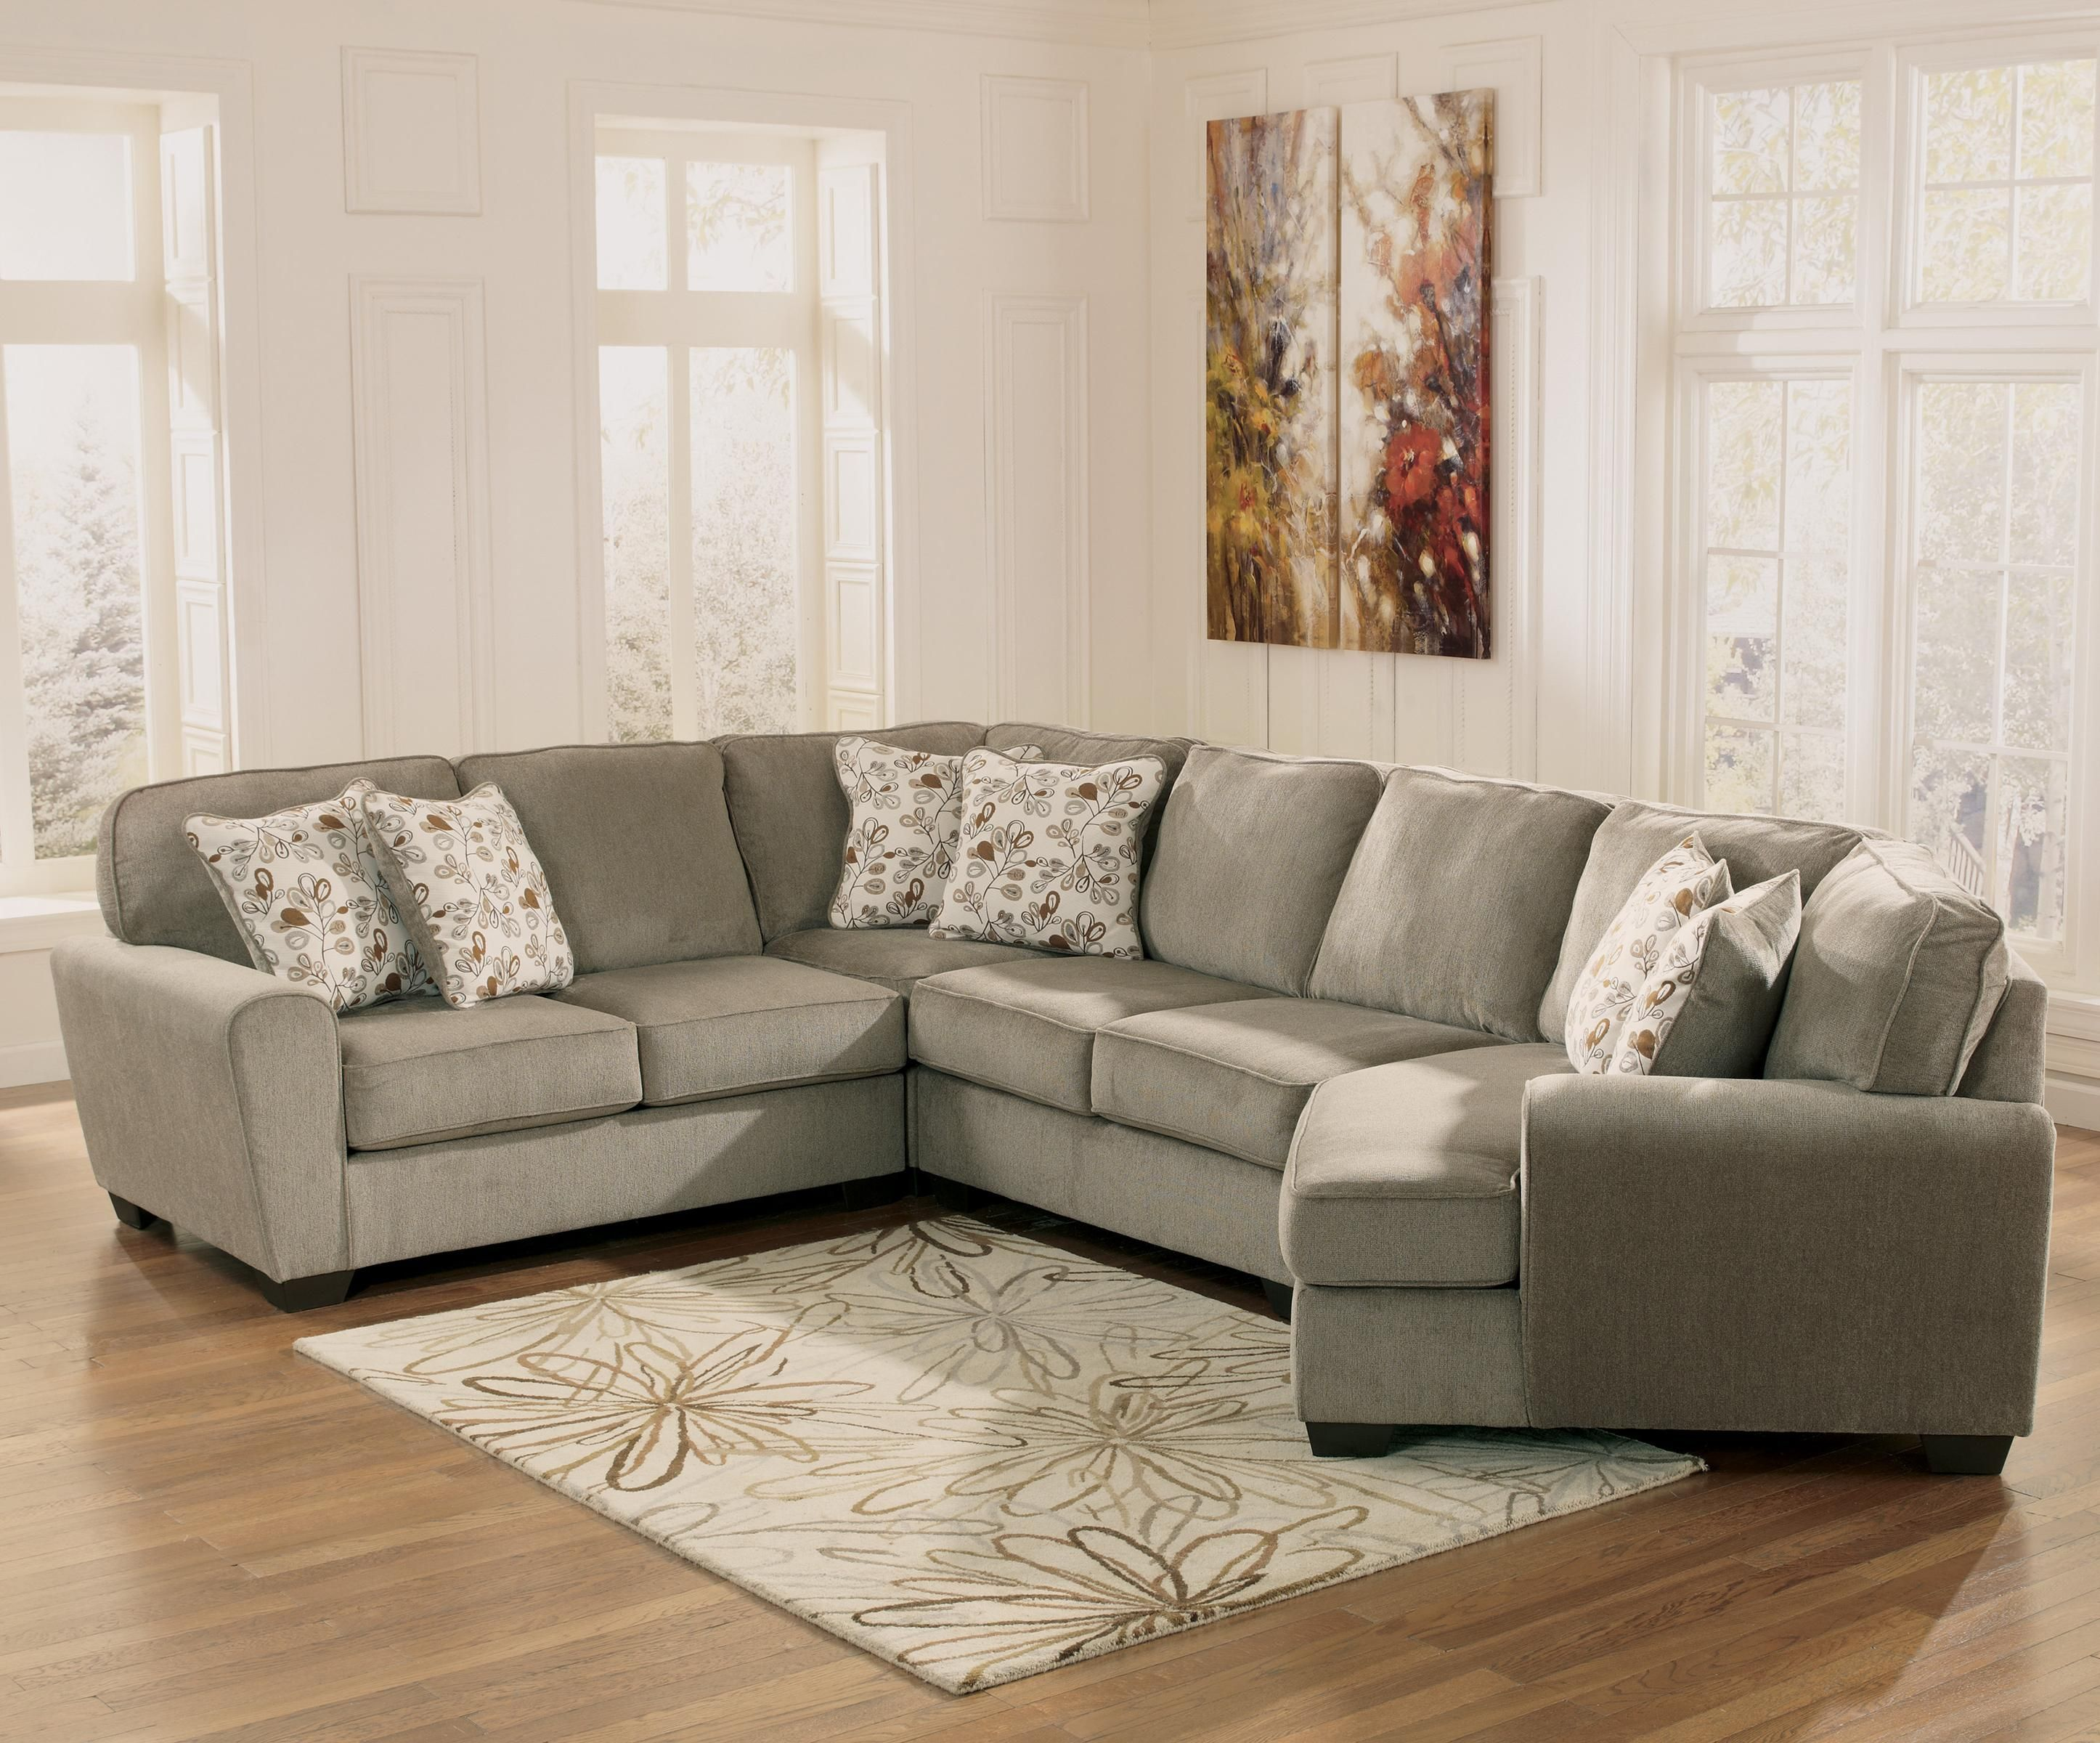 Patola Park   Patina 4 Piece Small Sectional With Right Cuddler By Ashley  Furniture I Love The Angle On This Sectional